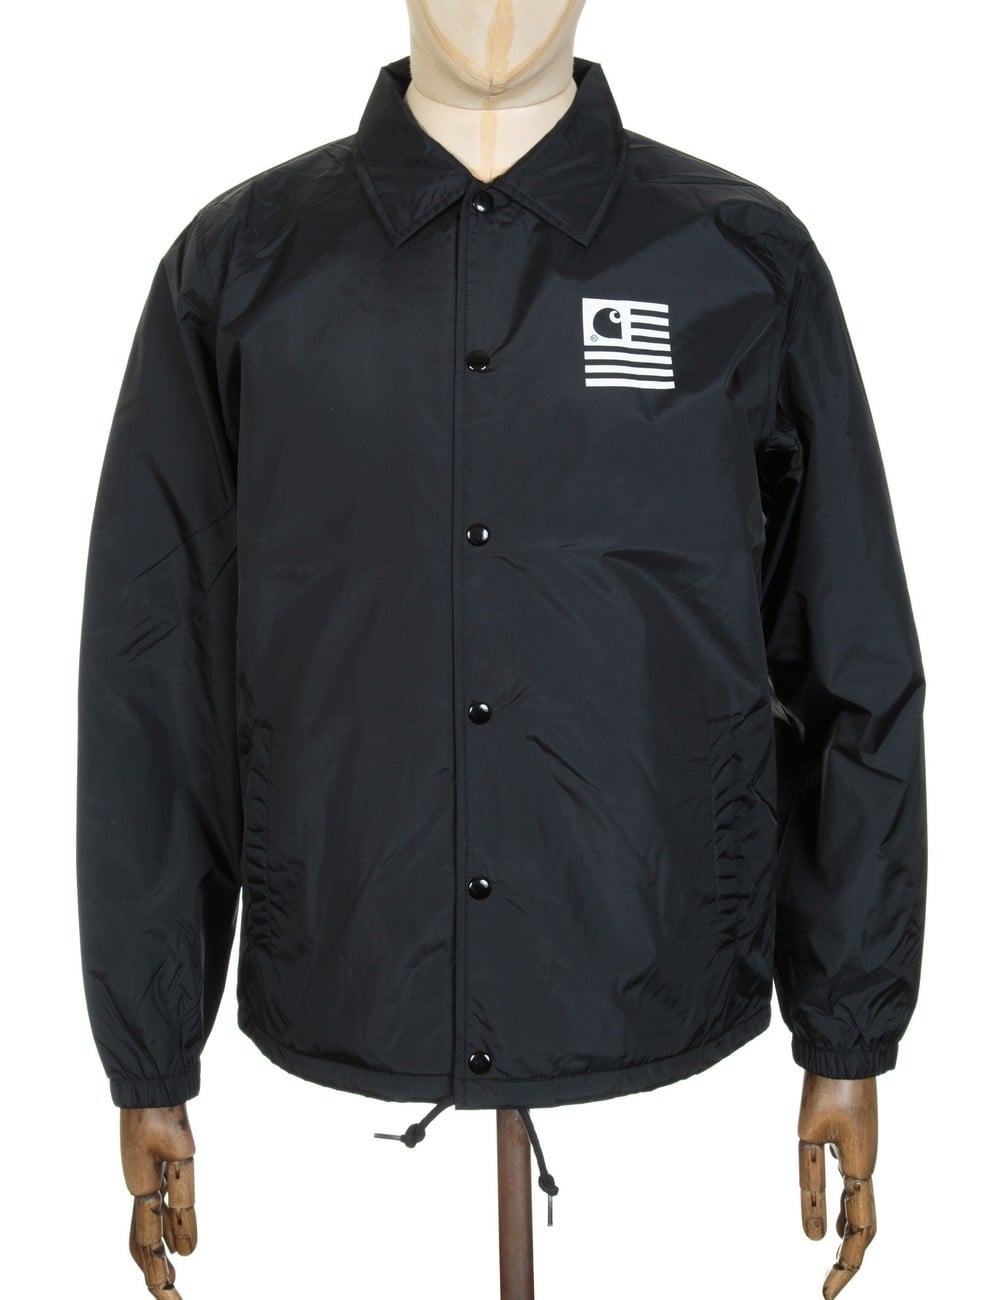 Carhartt Wip State Coach Jacket Blackwhite Clothing From Fat